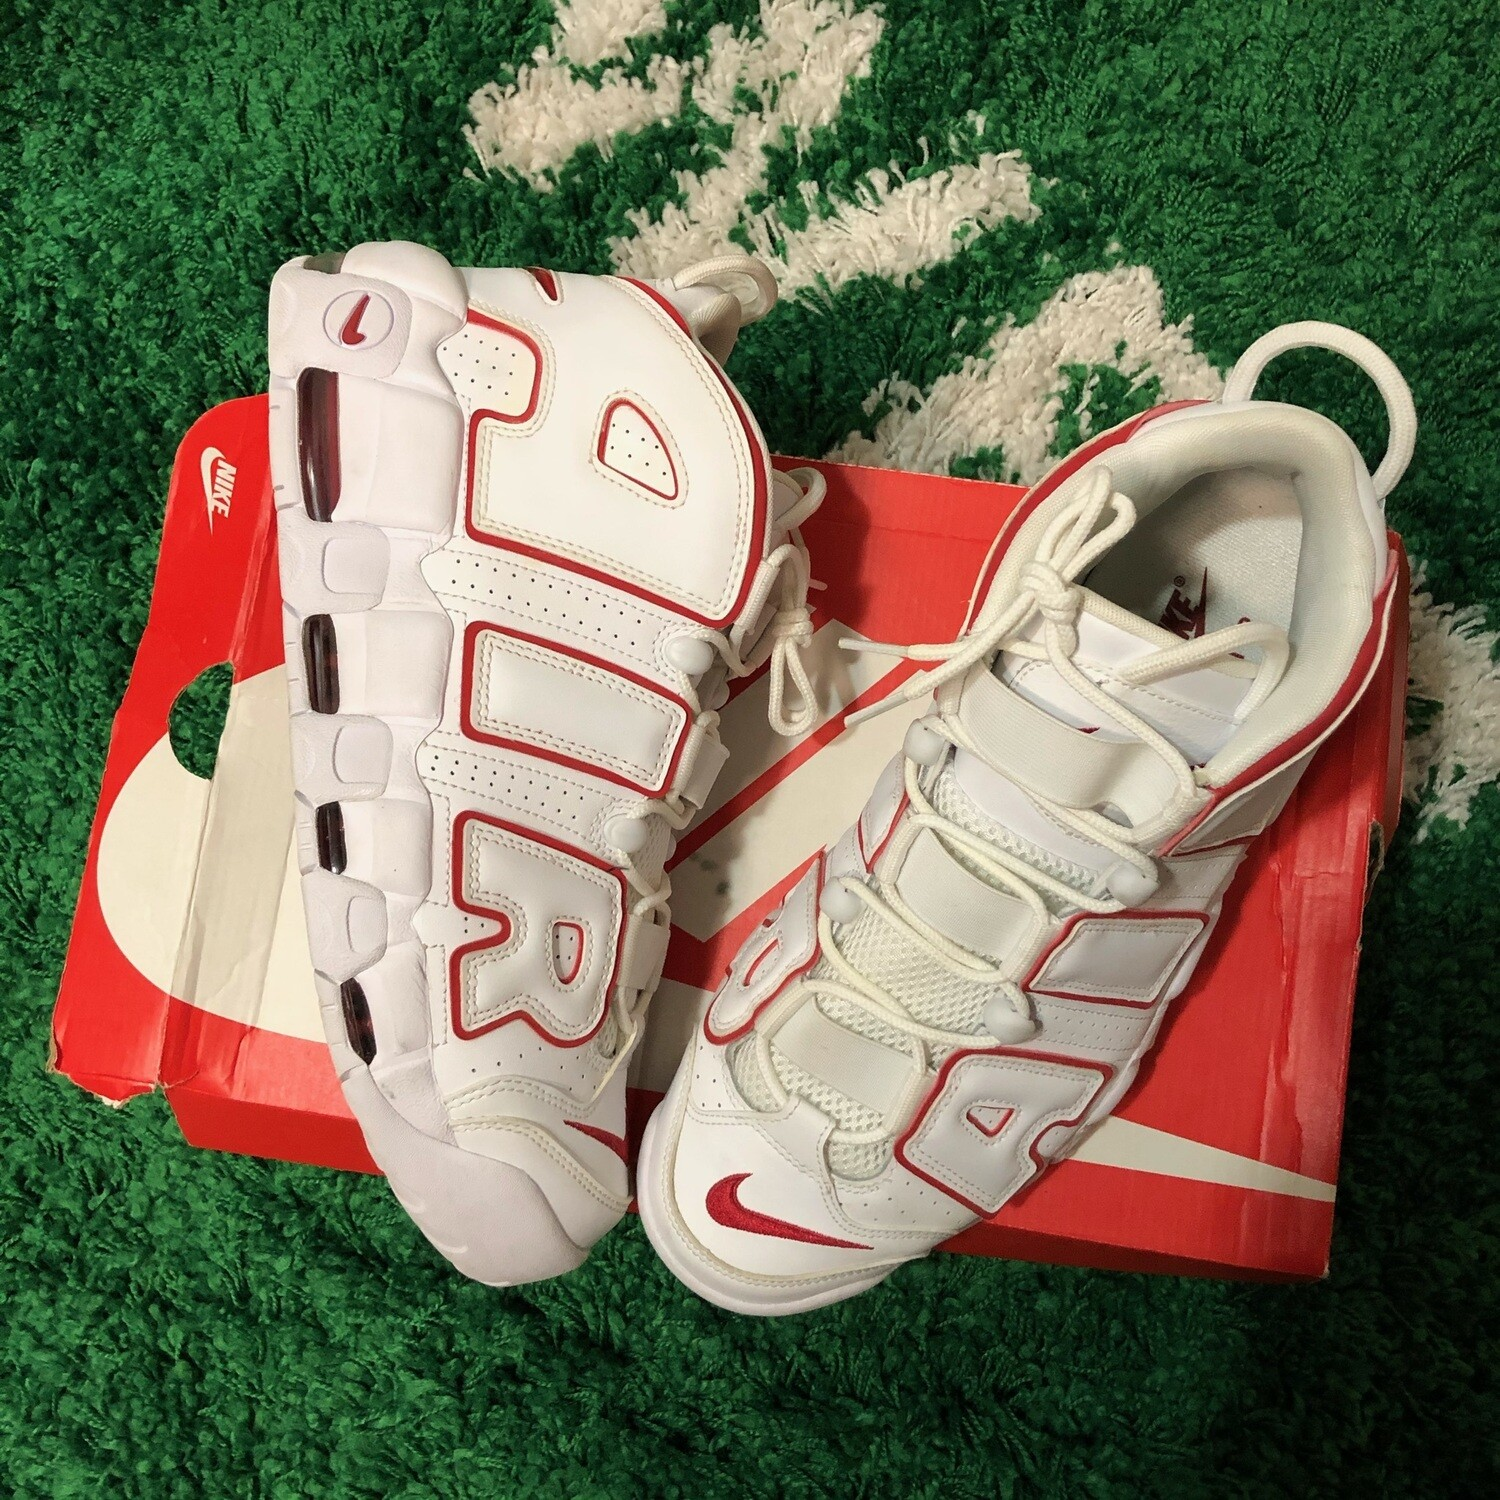 Nike Air Uptempo White/Red Size 12